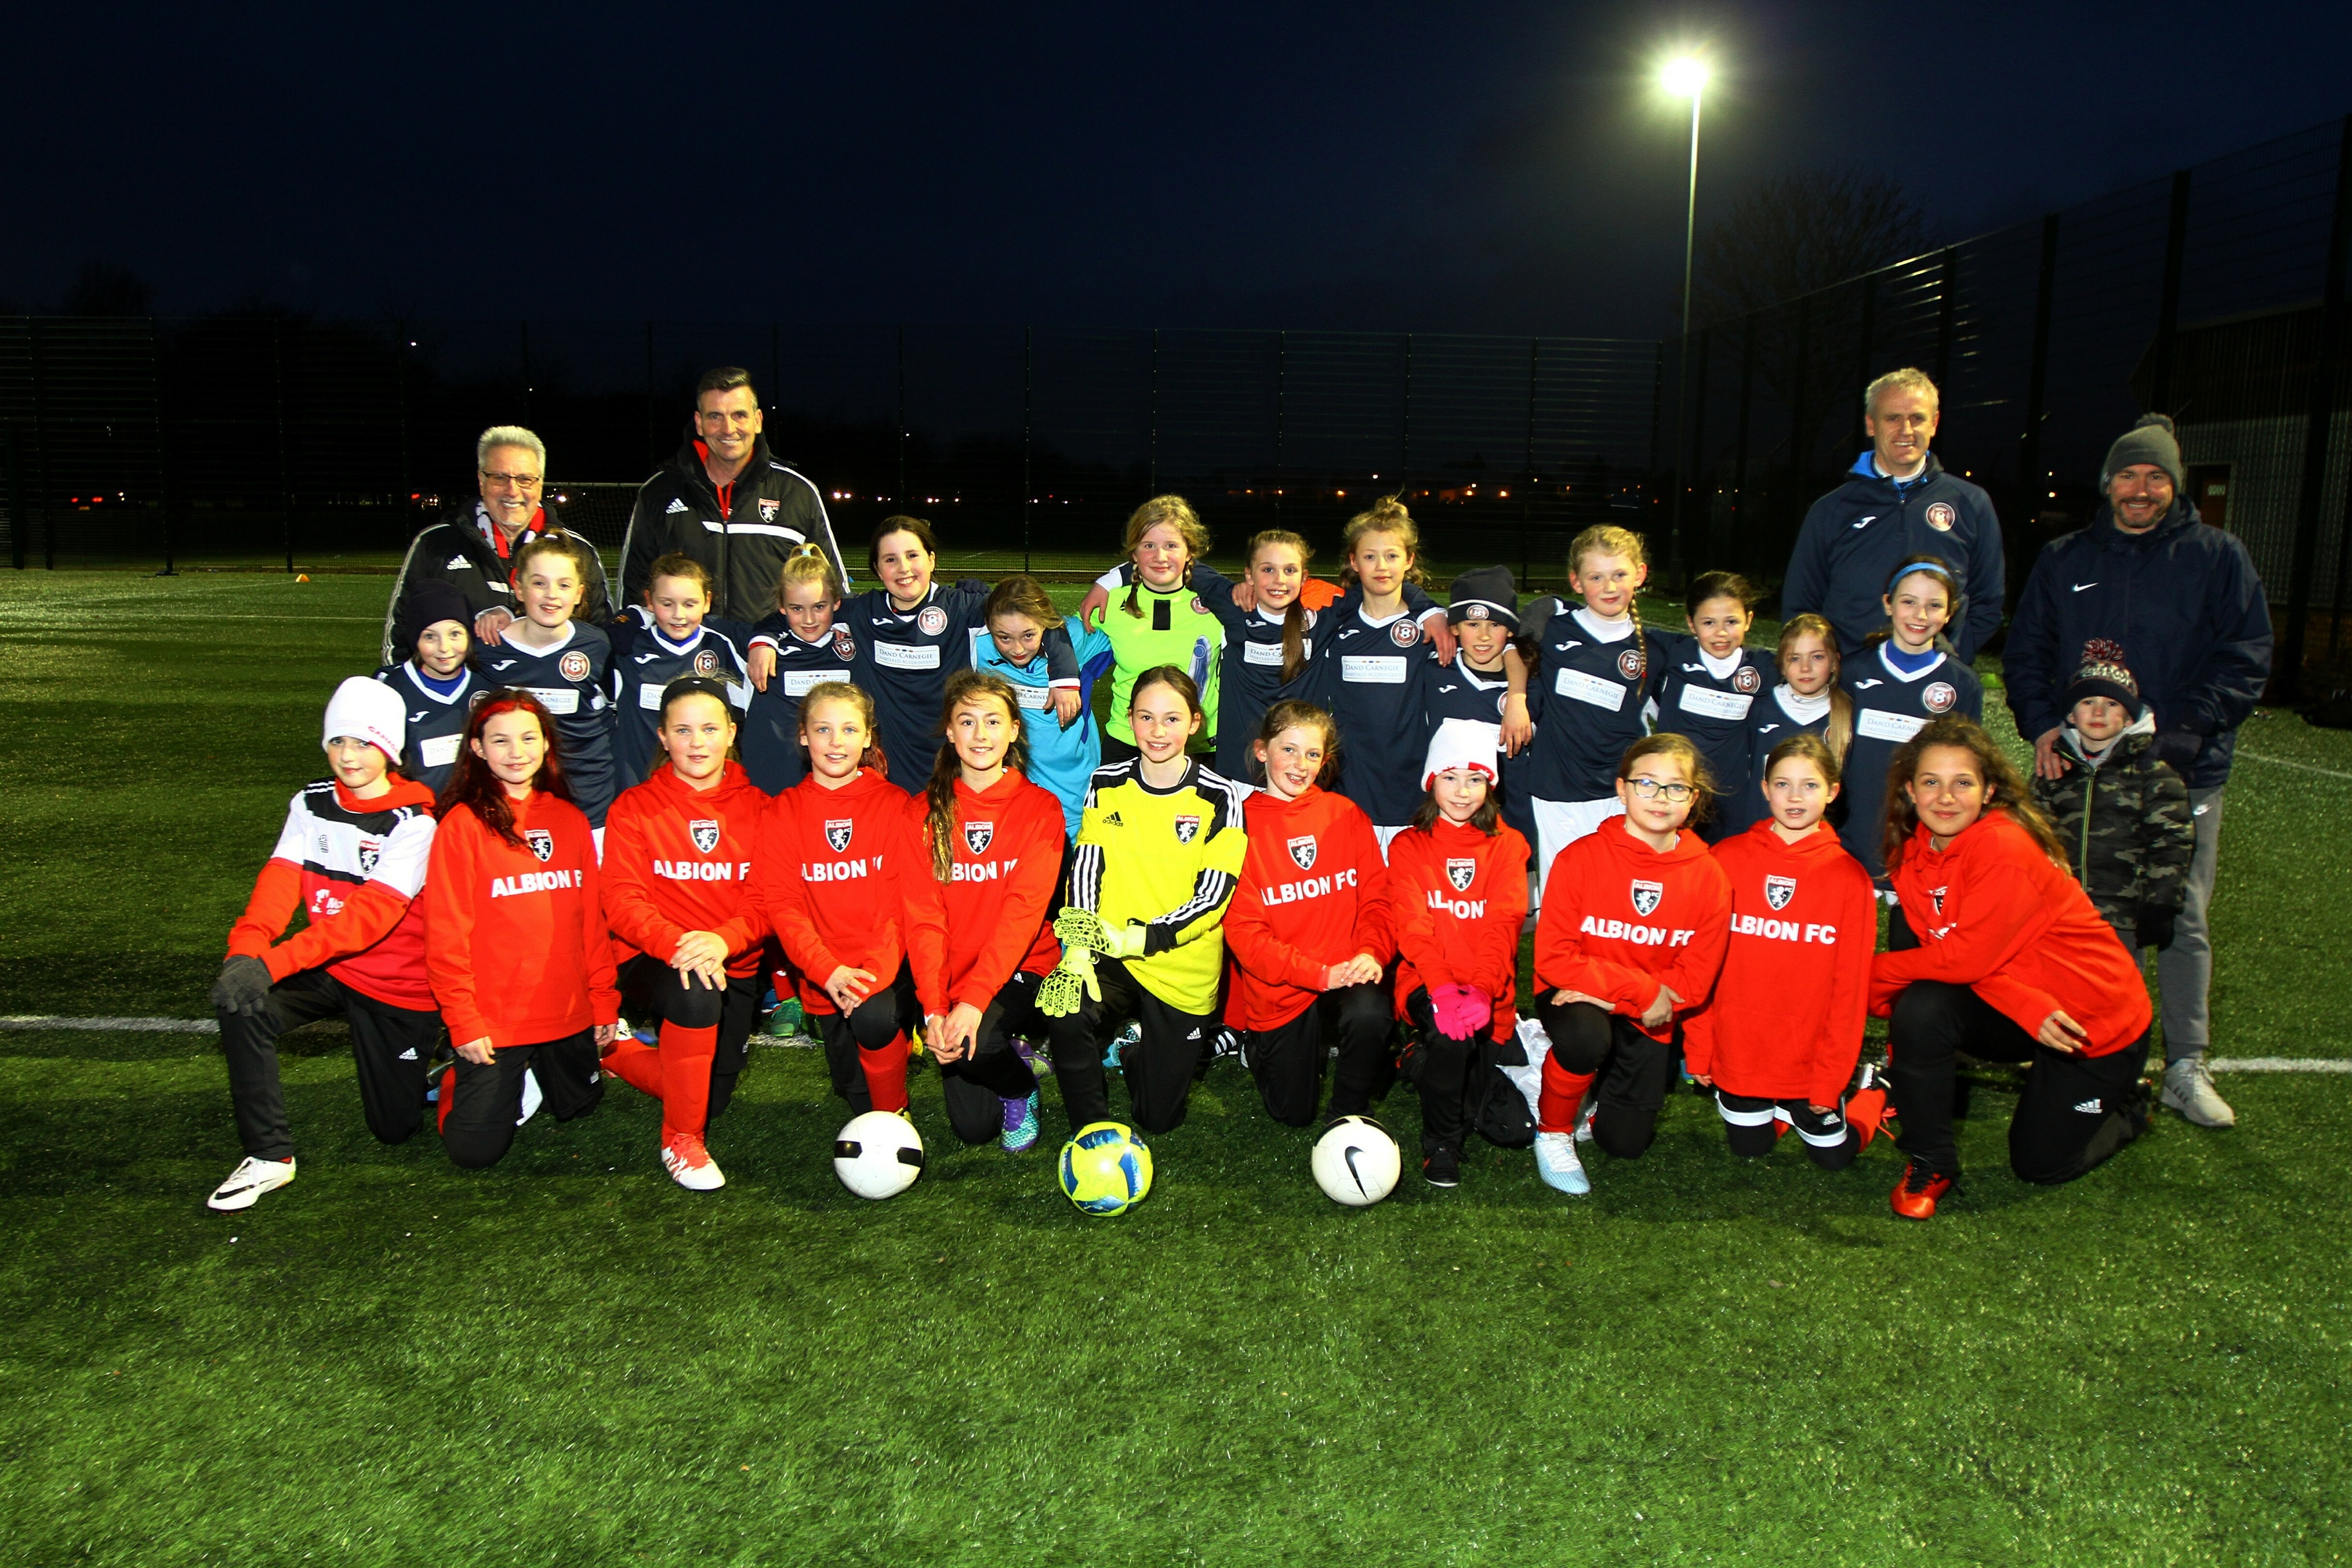 The girls of Albion FC, front row, from Vancouver, Canada, and Dundee East Girls U-11's with their coaches, before their challenge match